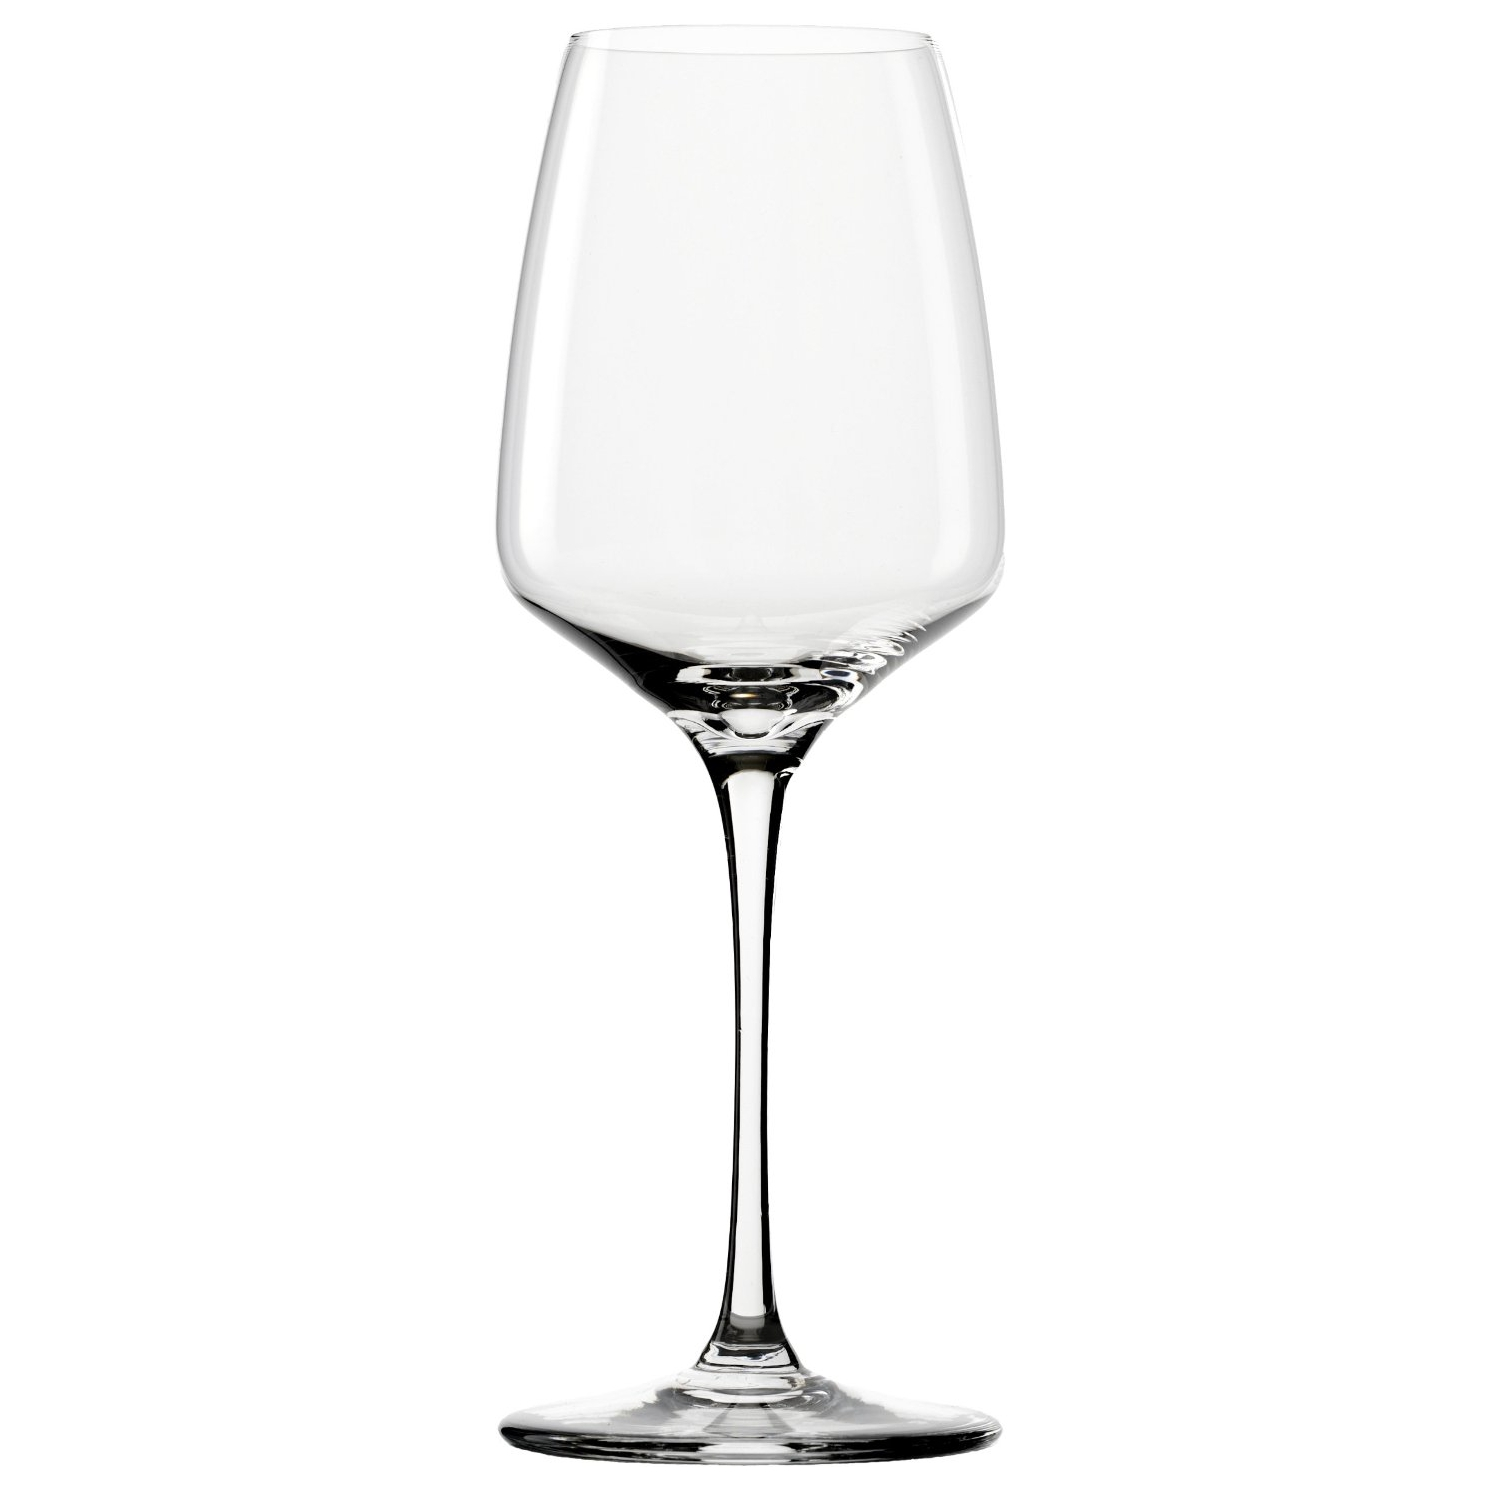 Stolzle Experience Crystal Red Wine Glass, Set of 4